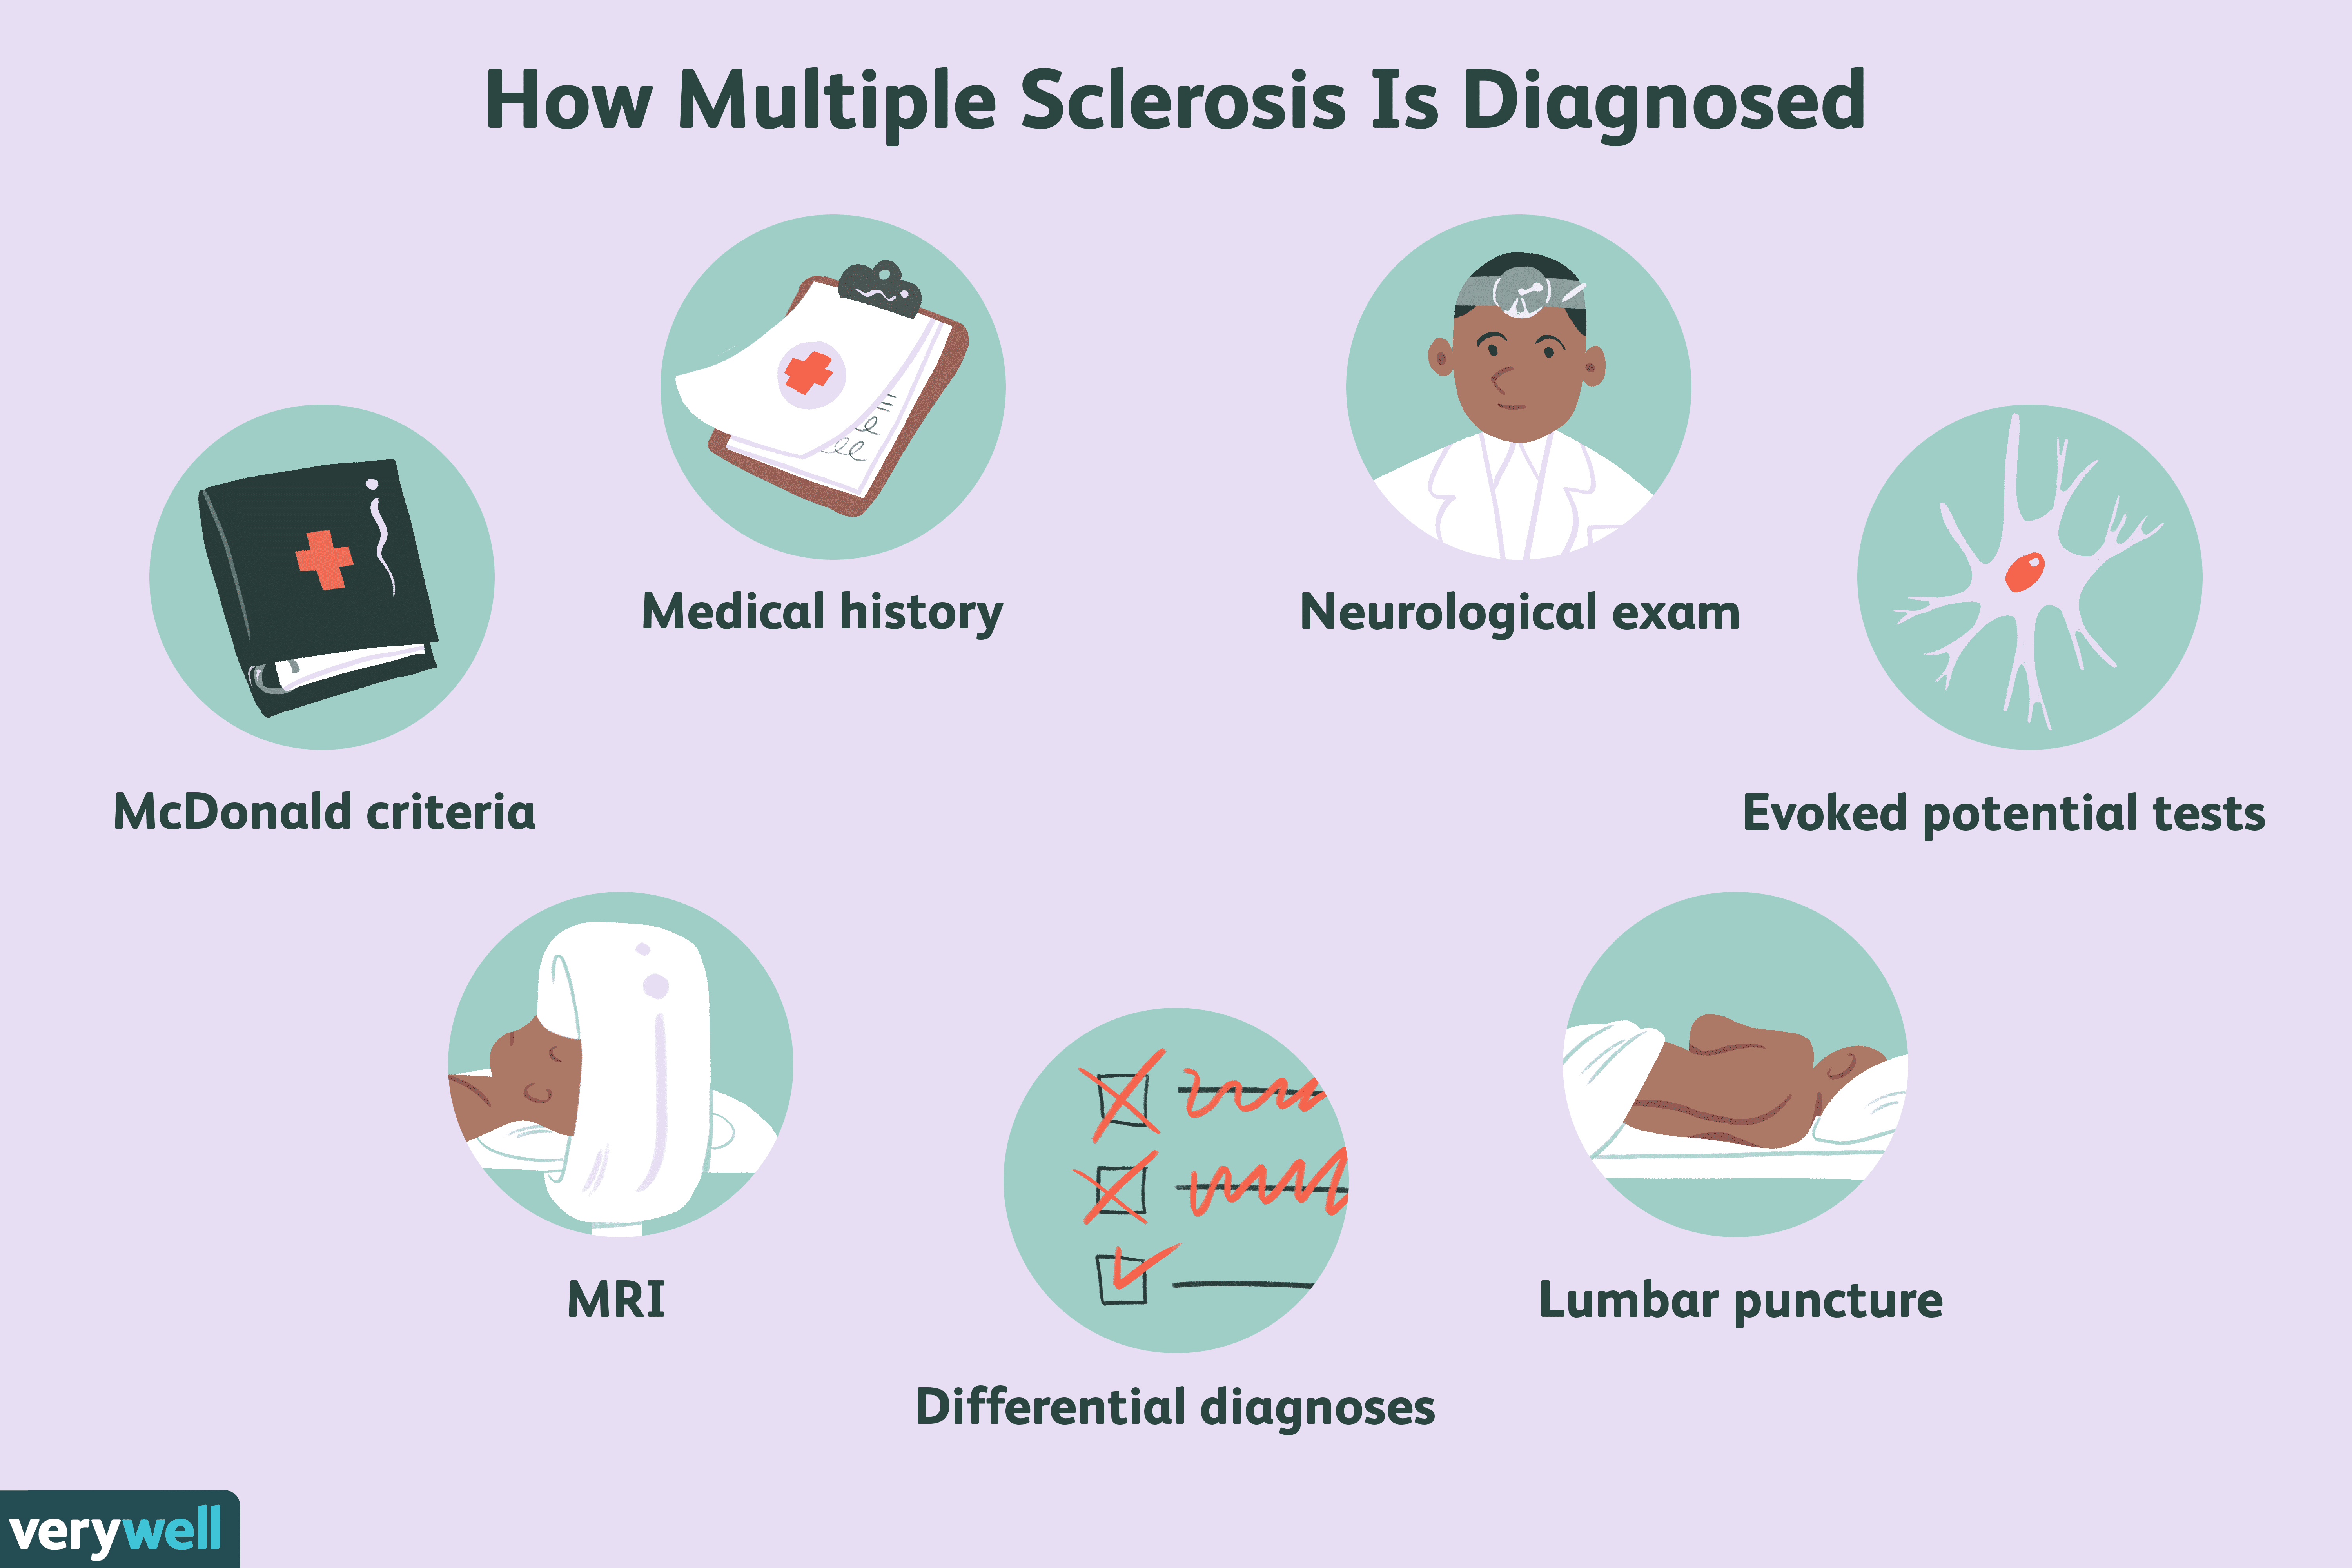 How Multiple Sclerosis Is Diagnosed